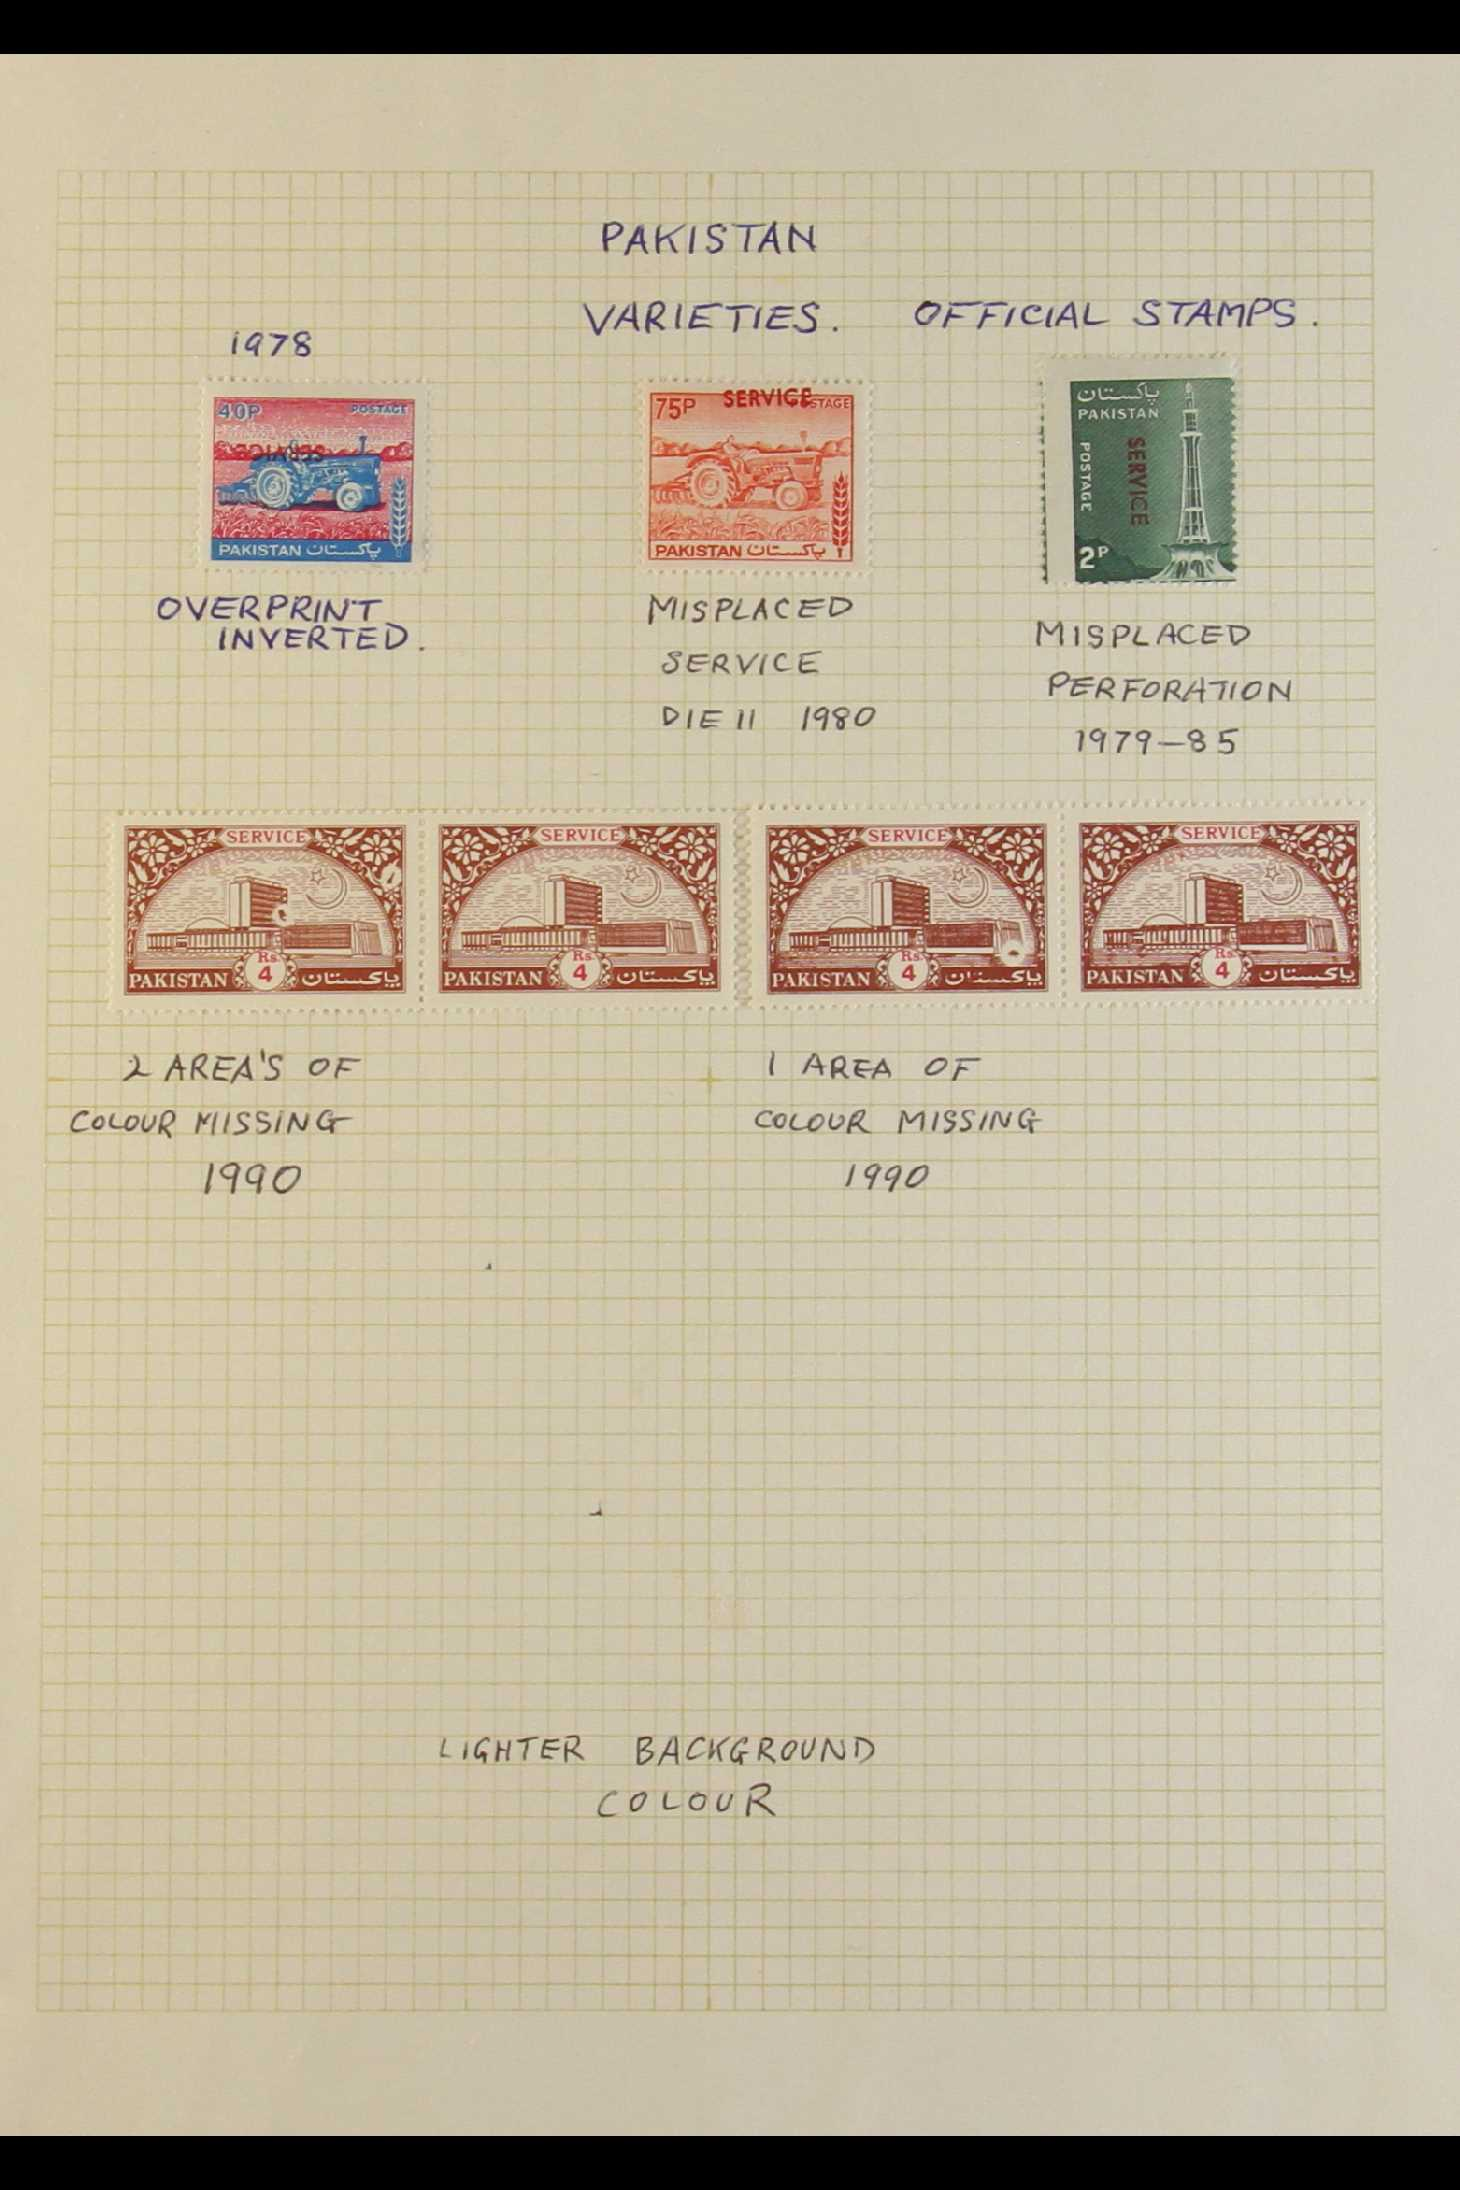 PAKISTAN 1960-2000 VARIETIES COLLECTION mint or nhm incl. 1960 Revolution Day 2a pink OMITTED, - Image 2 of 9